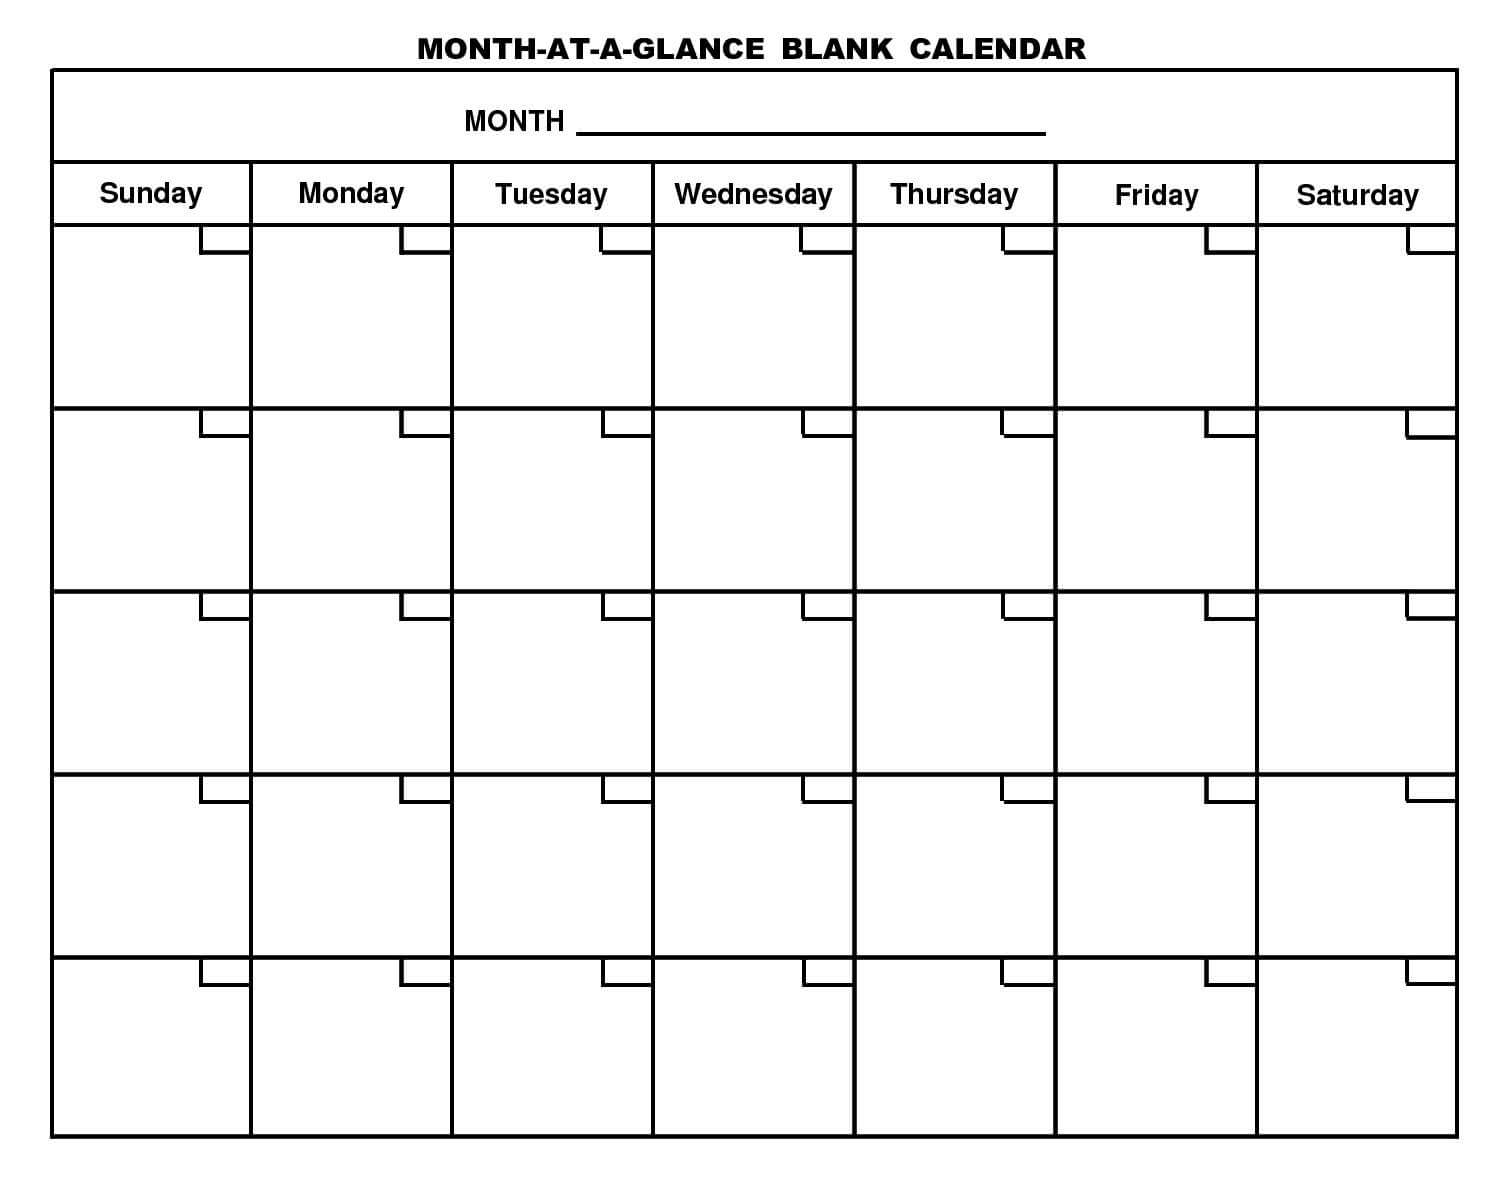 Pinstacy Tangren On Work | Free Printable Calendar With Regard To Month At A Glance Blank Calendar Template